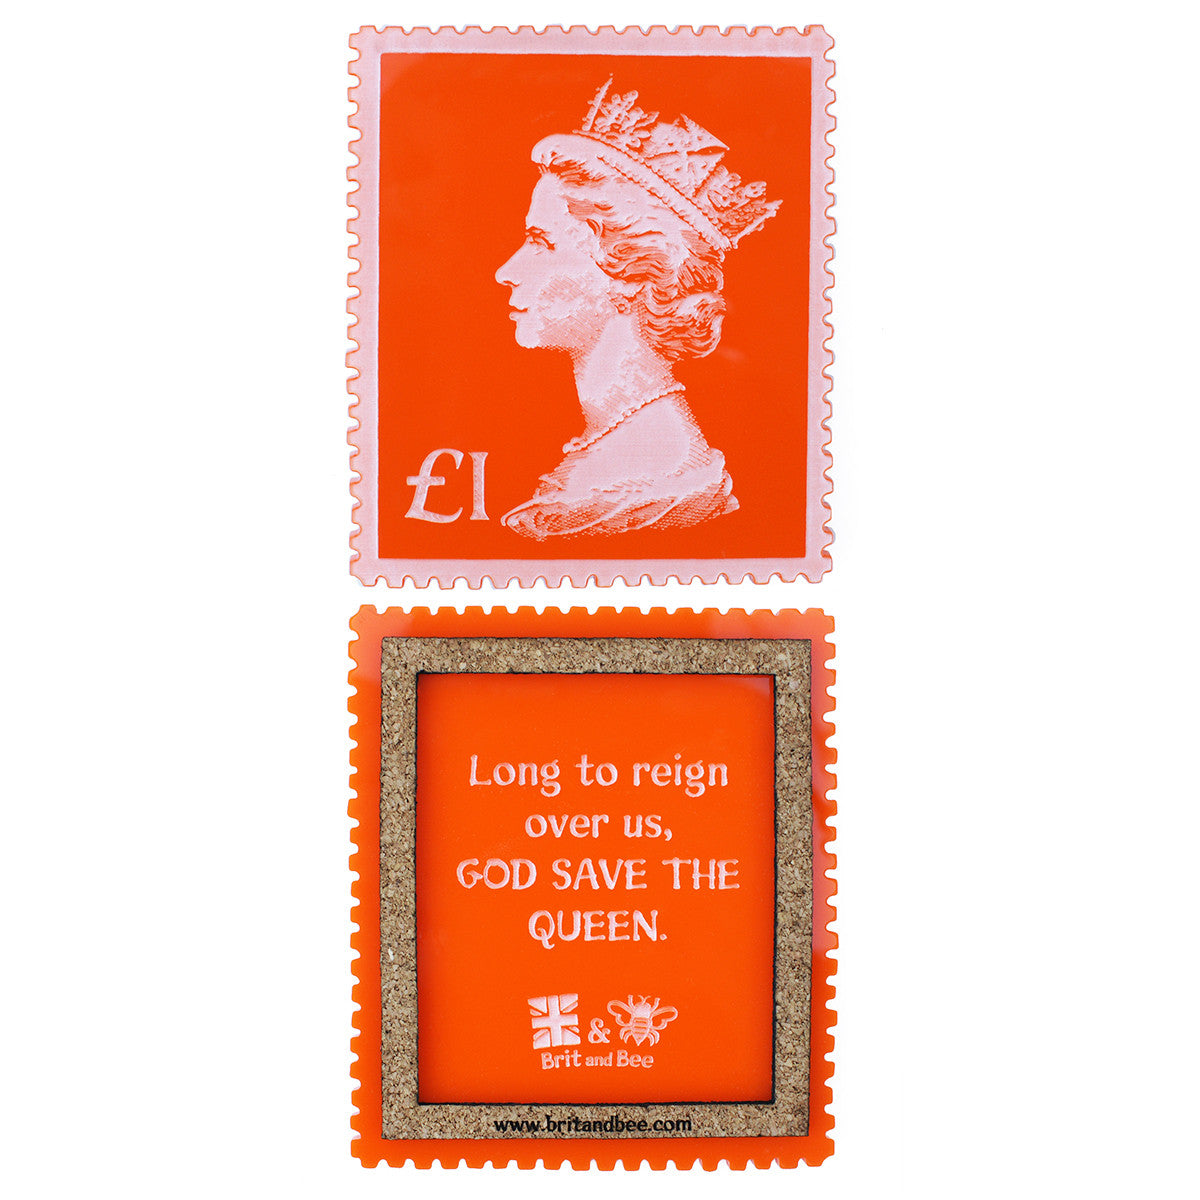 Brit and Bee British Stamp Coaster Set - God Save The Queen